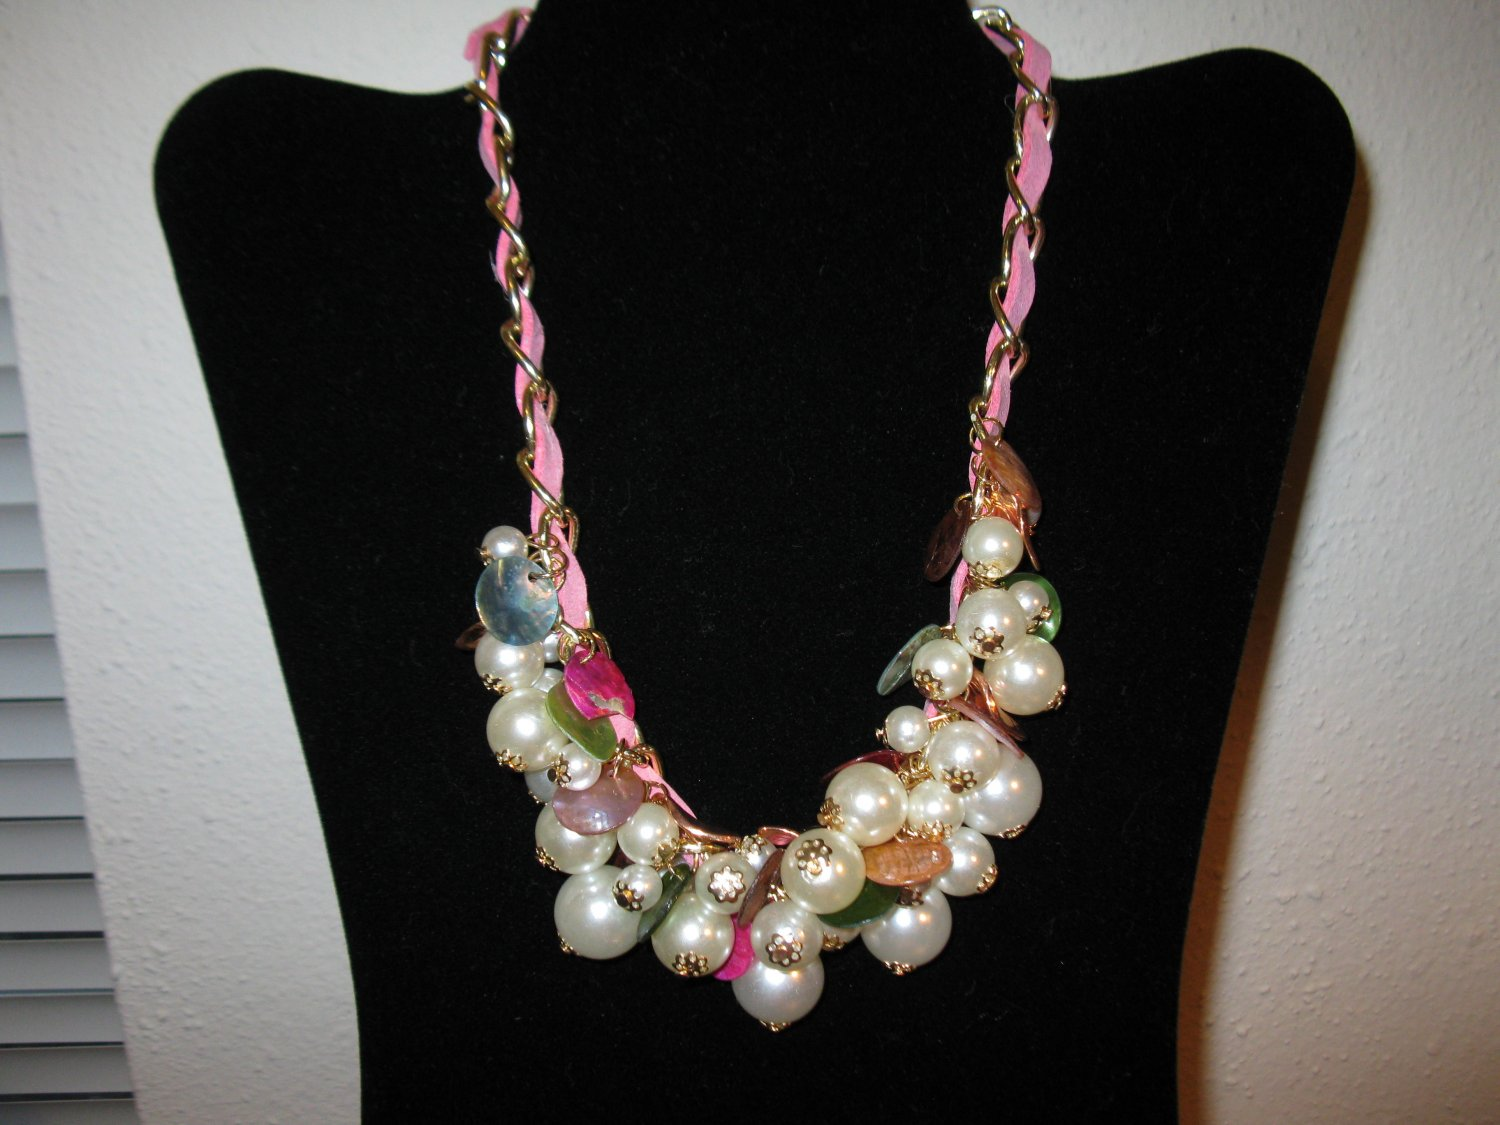 Unique Chunky Pearl Necklace With Pink Leather Entwined In Adjustable Chain D708